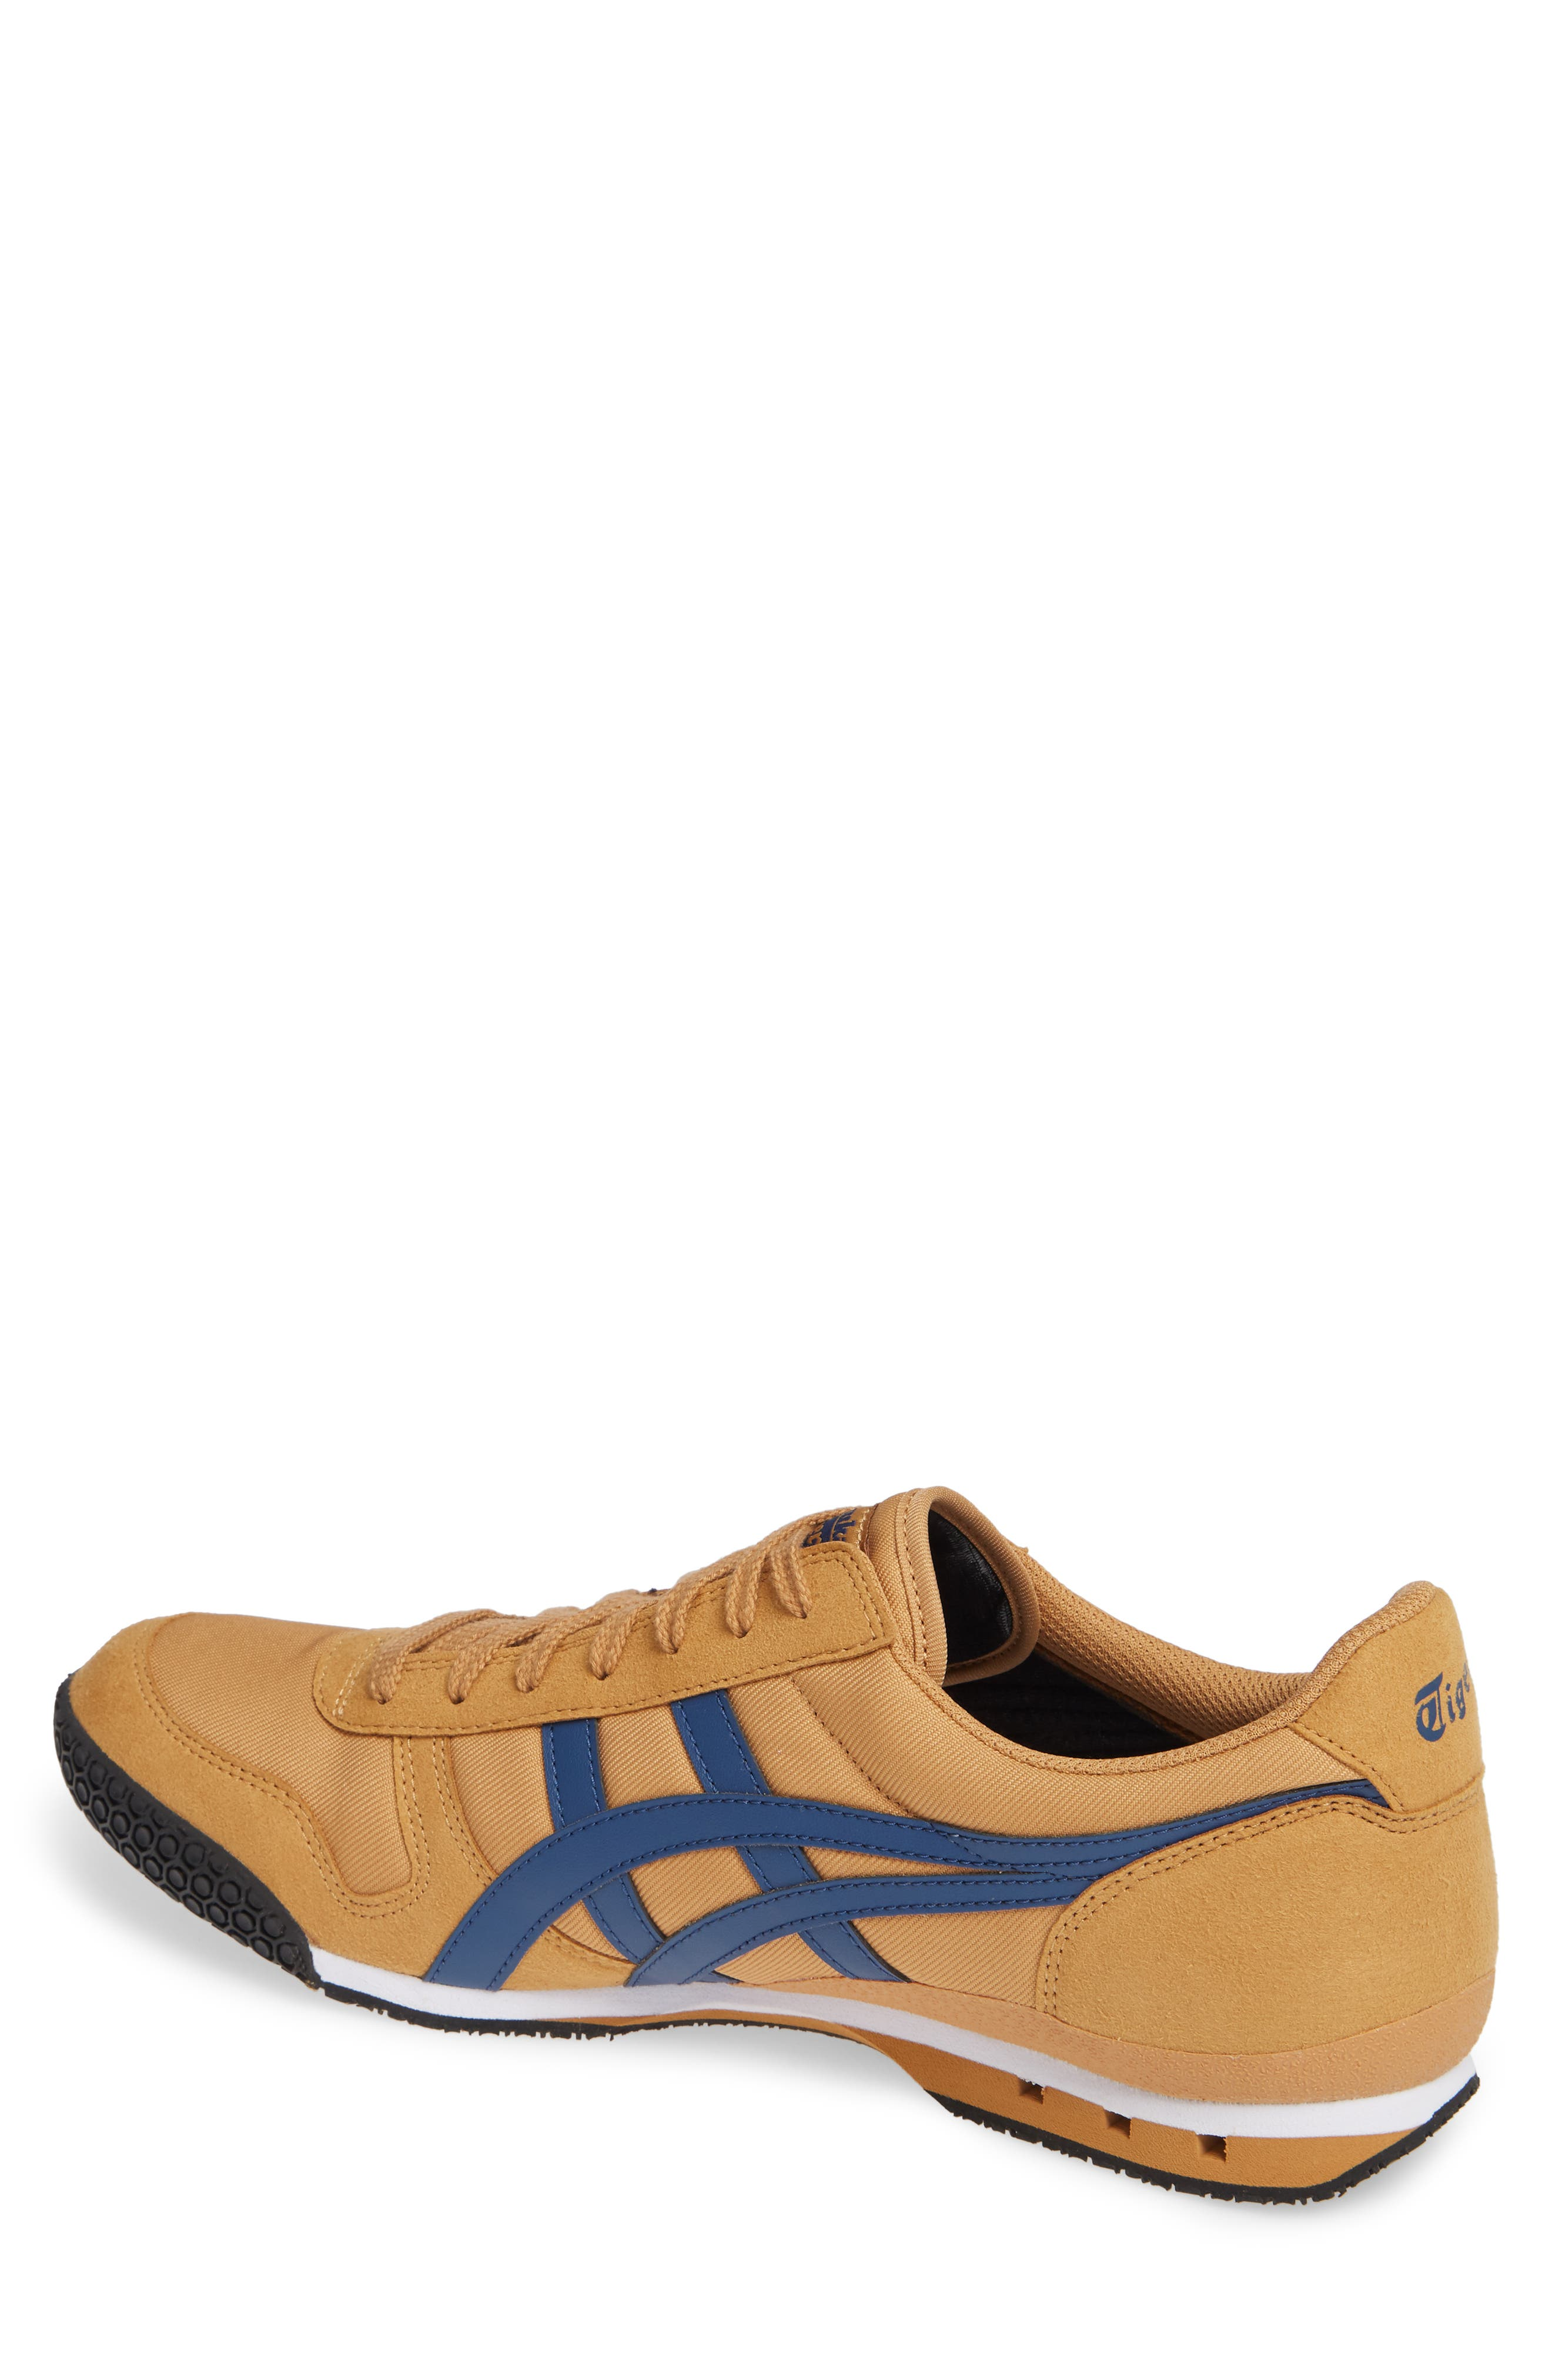 Onitsuka Tiger<sup>™</sup> Ultimate 81<sup>™</sup> Sneaker,                             Alternate thumbnail 2, color,                             200